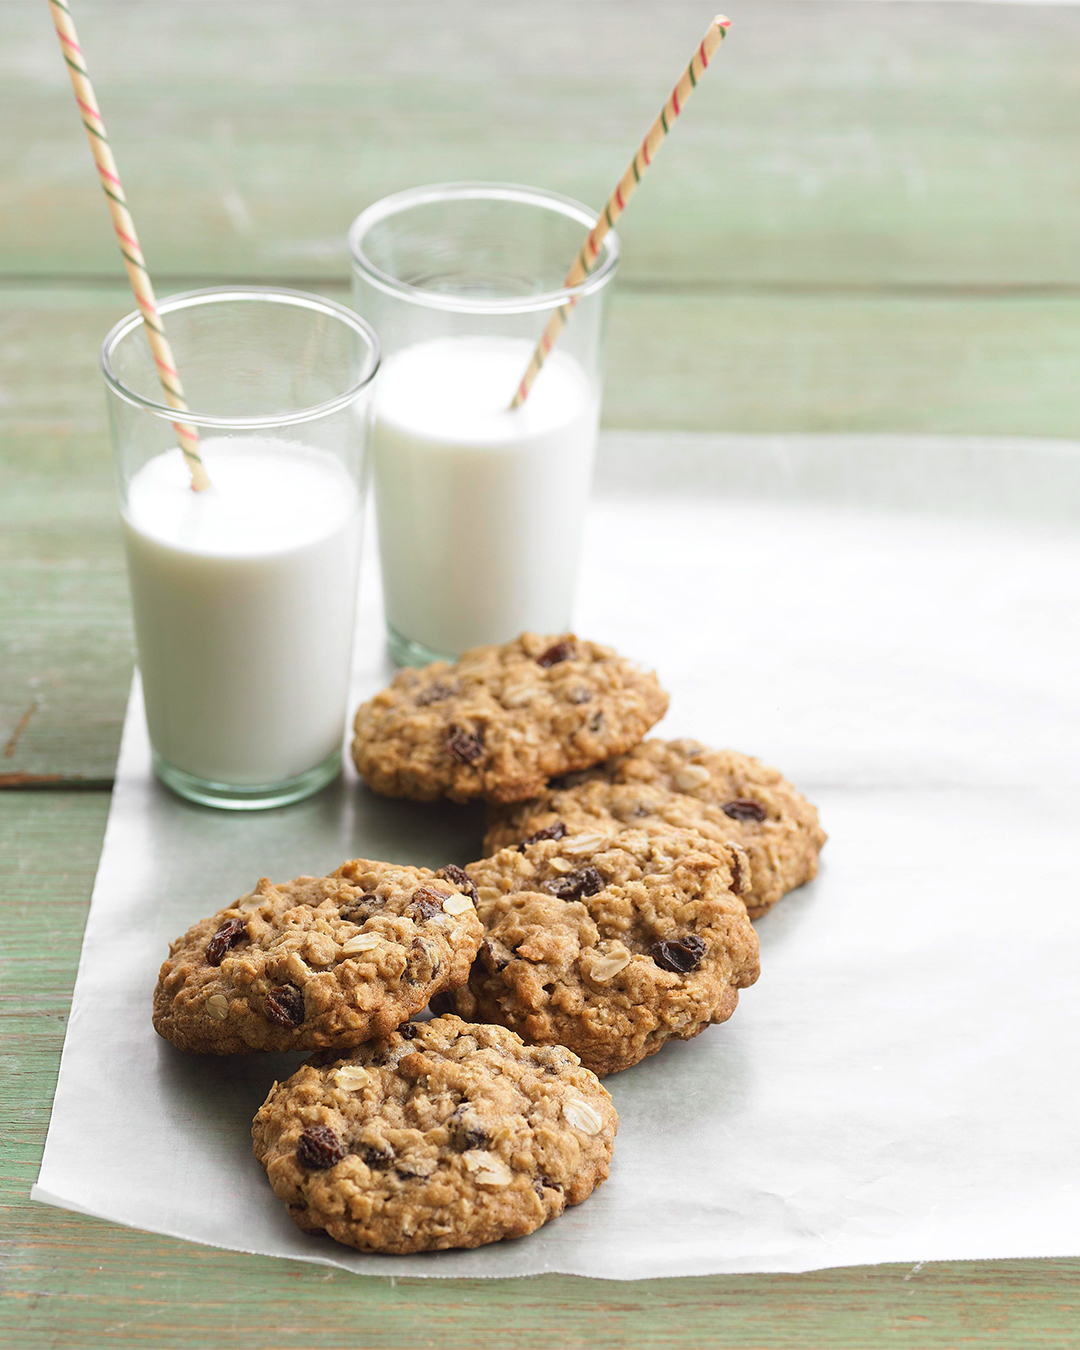 Oatmeal-Raisin Cookies with two glasses of milk